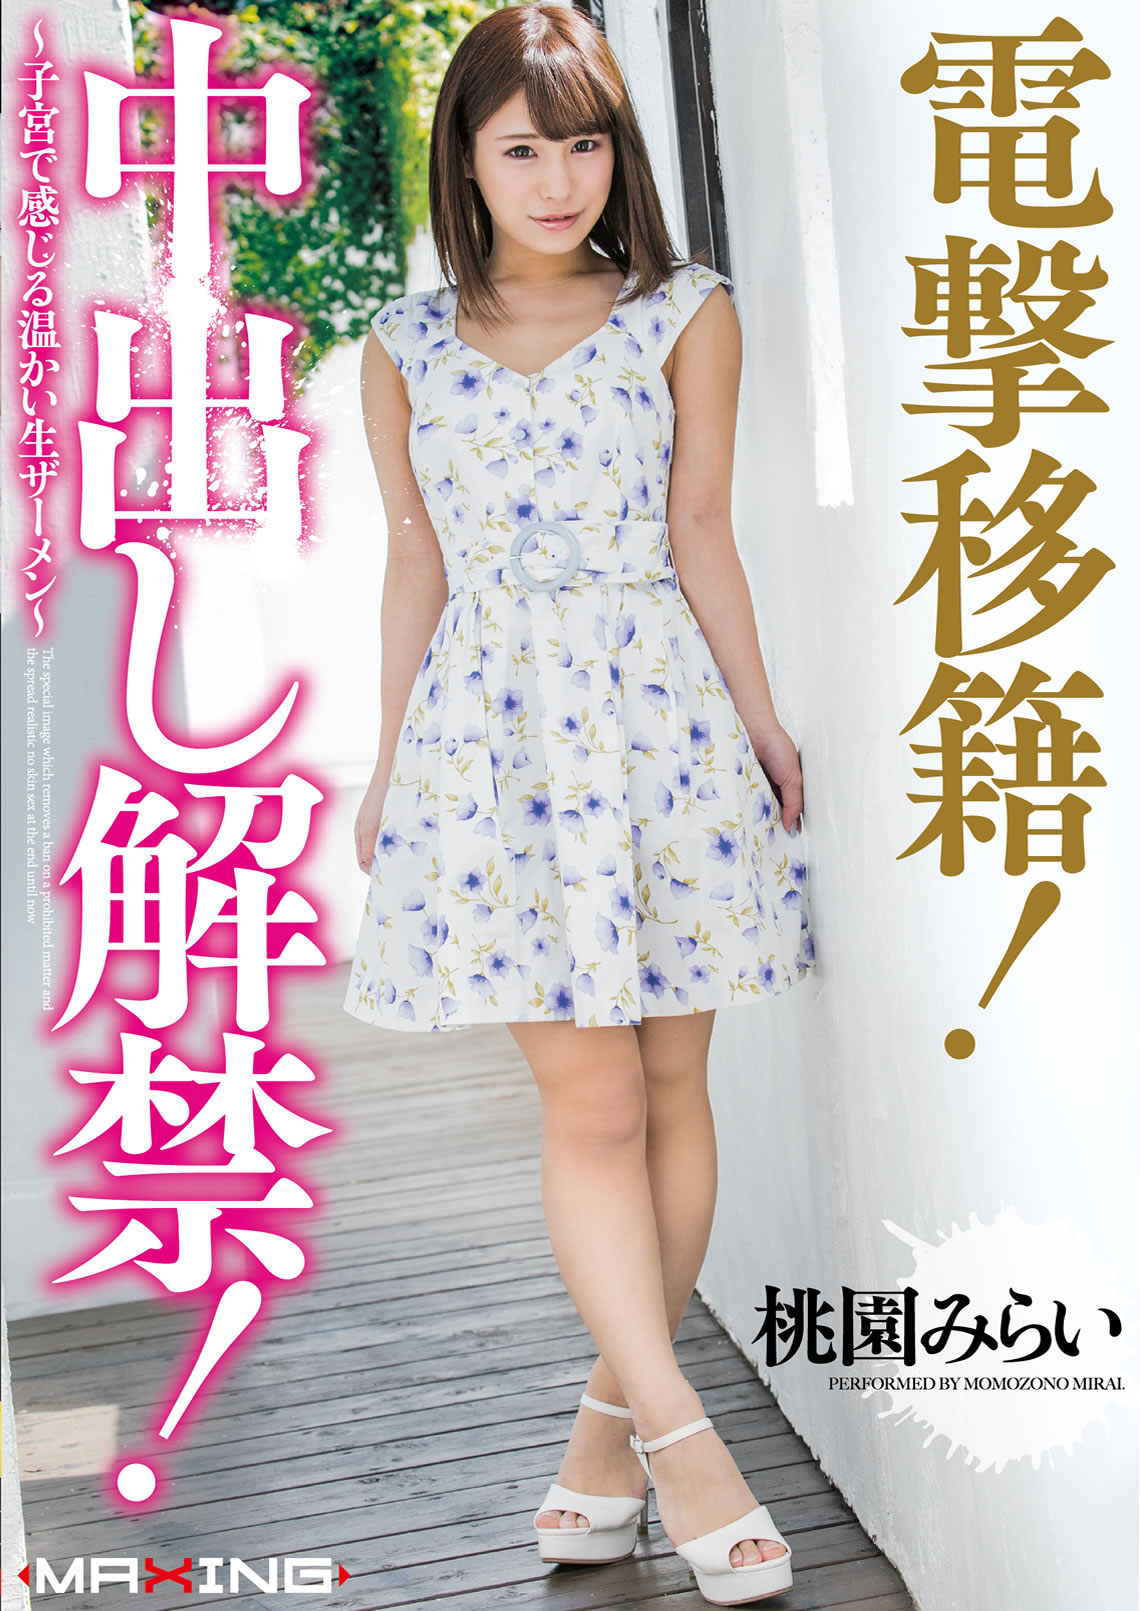 Shocking Transfers Production! Lifted Ban For Cream Pie! ~Feels Warm Raw Semen By Her Uterus~ Mirai Momozono